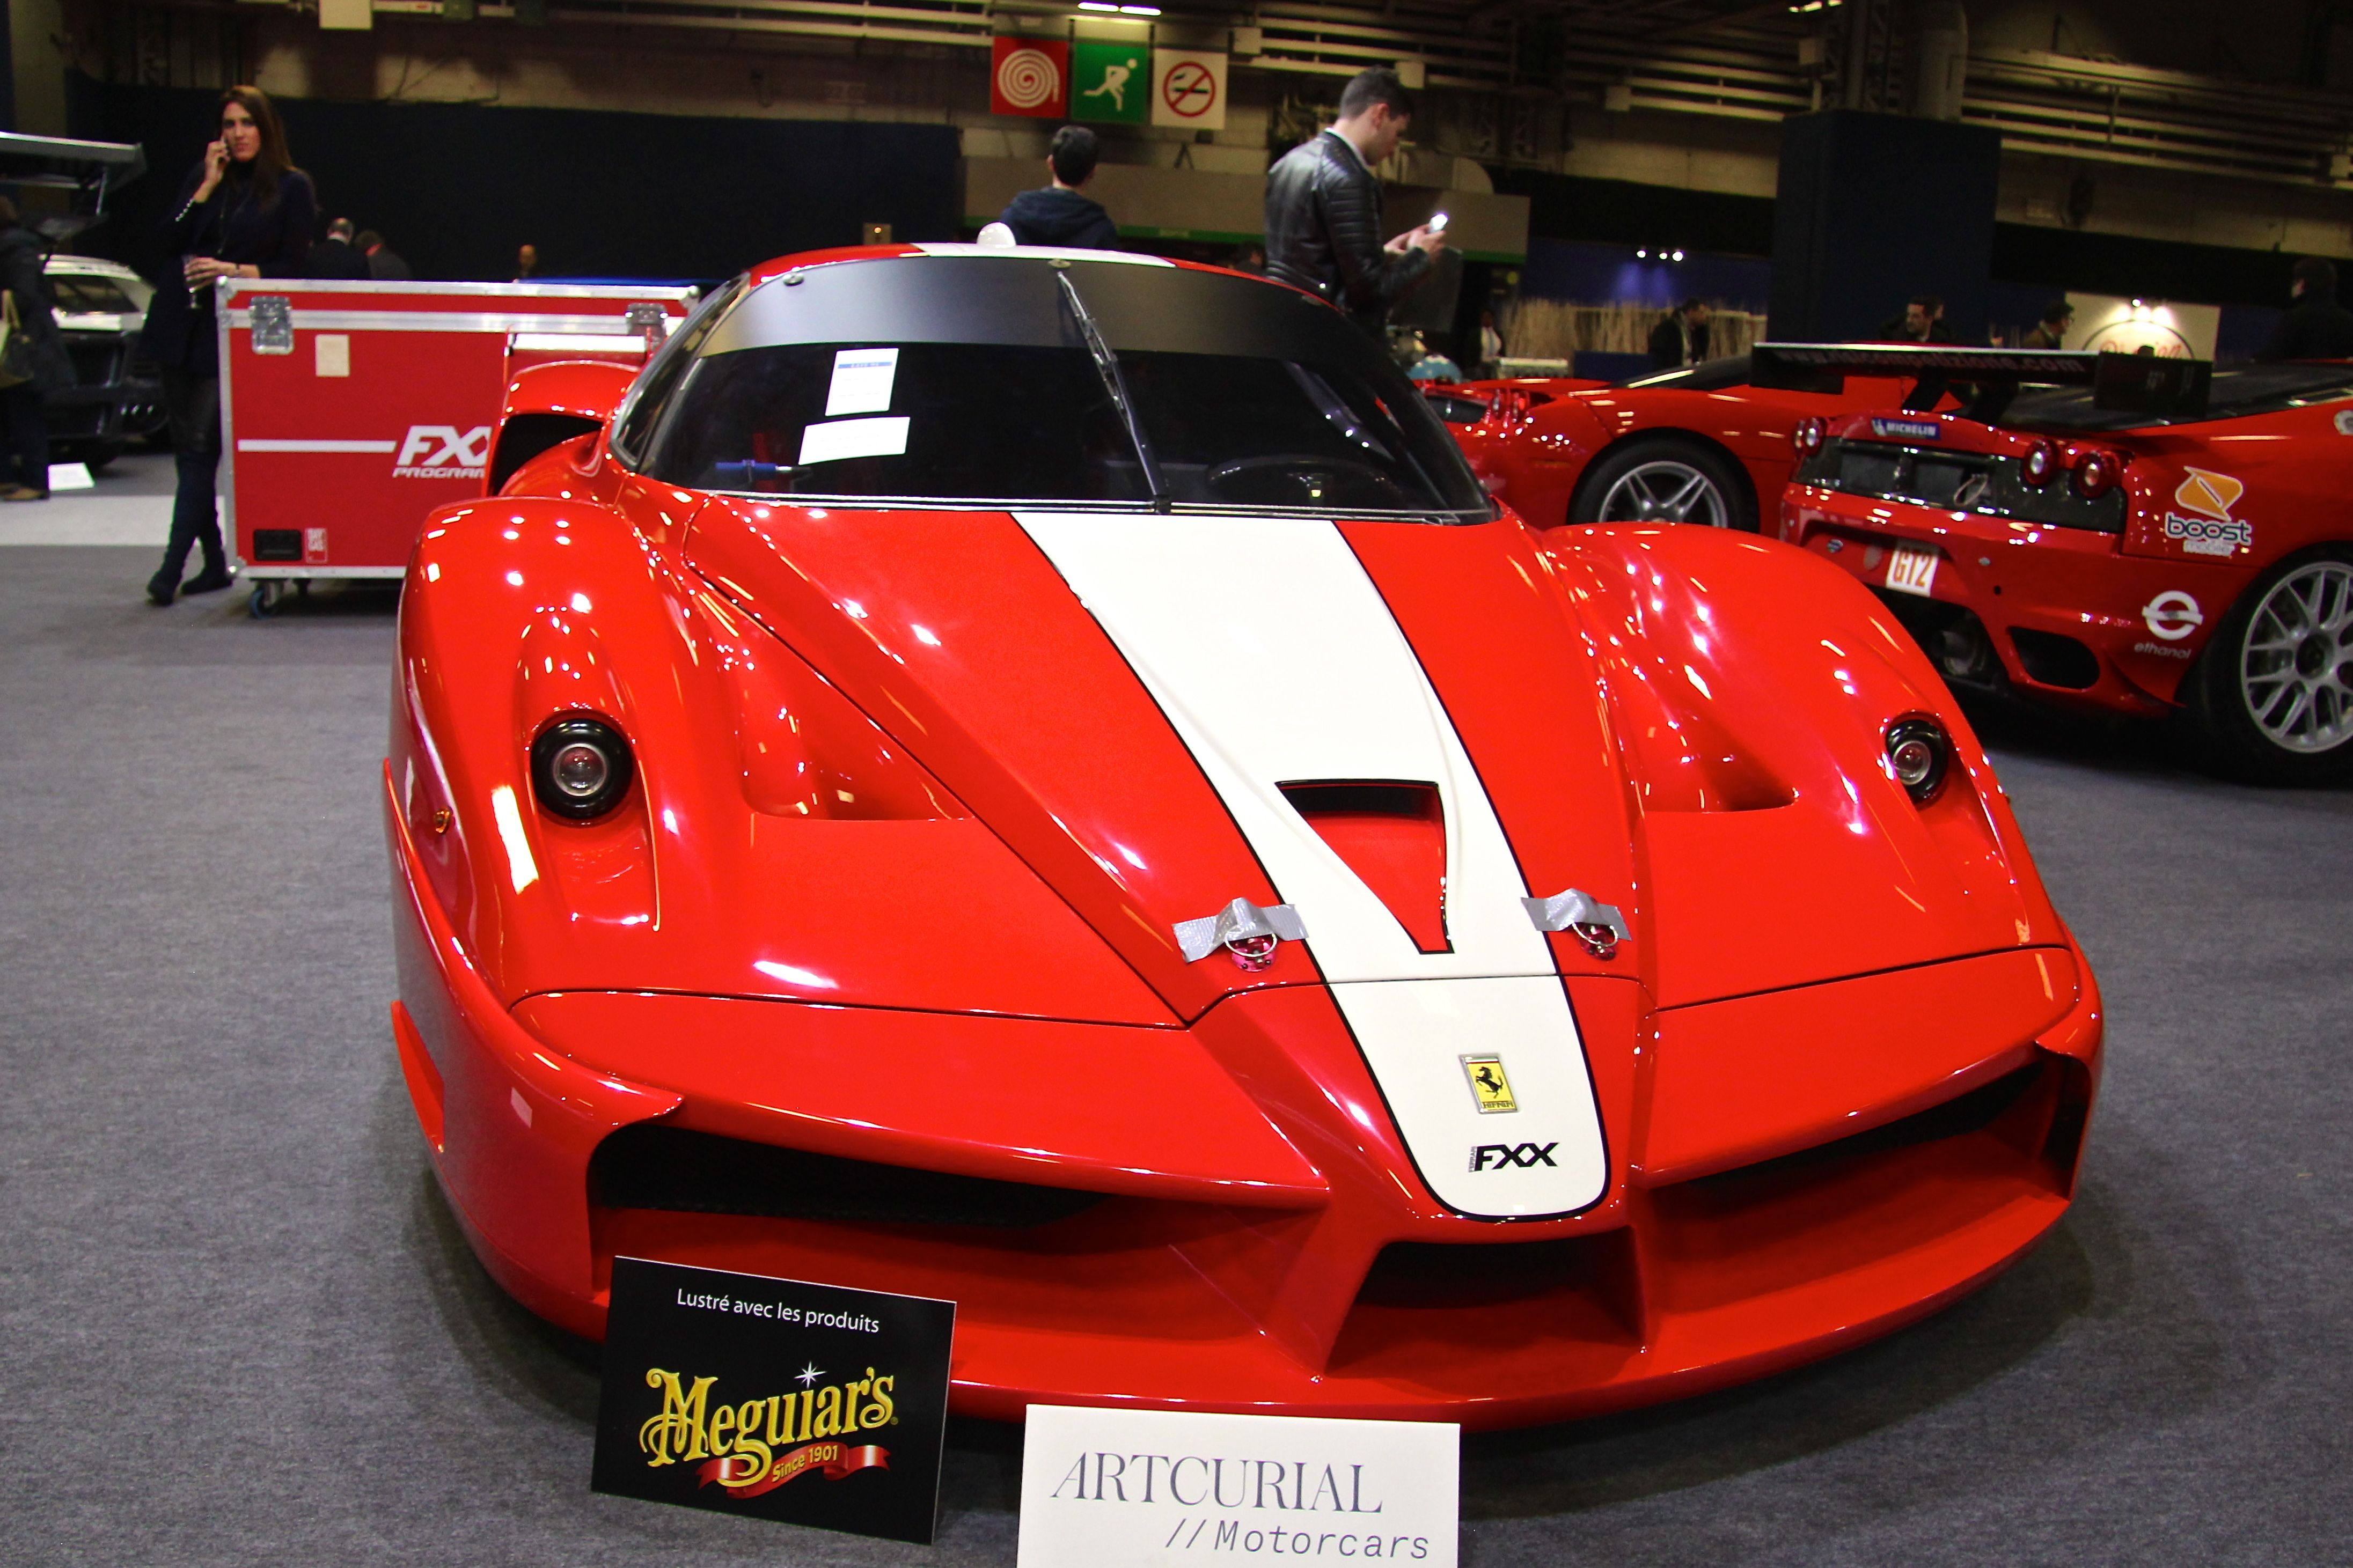 Ferrari FXX - 2006 - Retromobile - Artcurial - 2018 - photo Ludo Ferrari